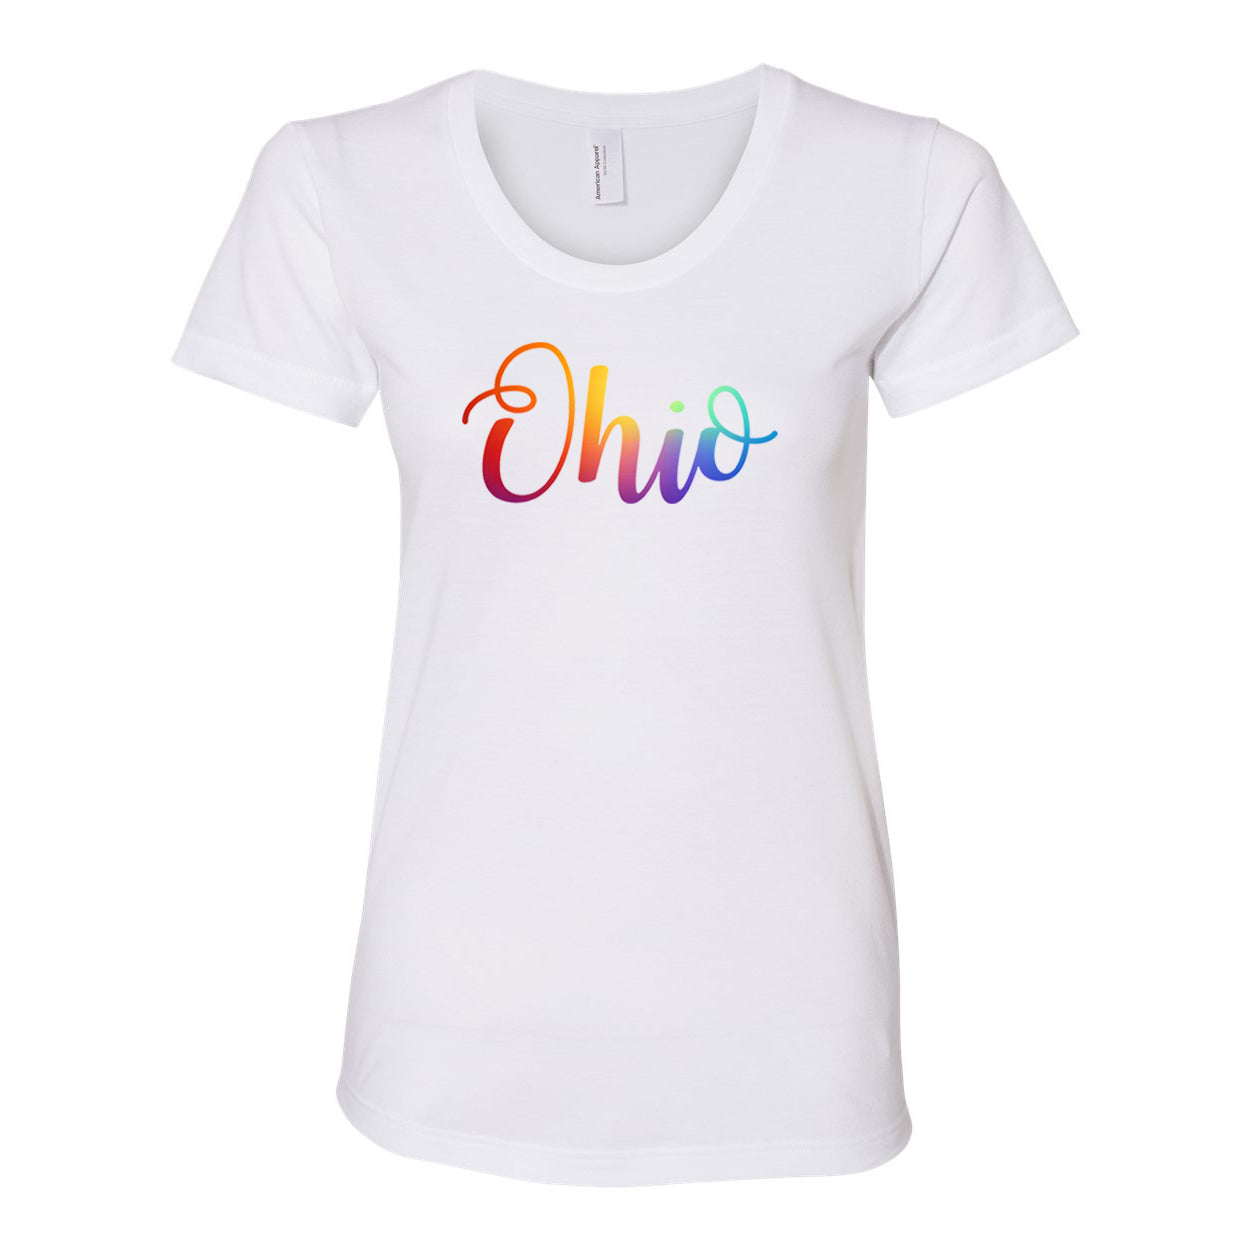 Pride Curly Ohio Women's Fit Soft Blend T-Shirt - Clothe Ohio - Soft Ohio Shirts